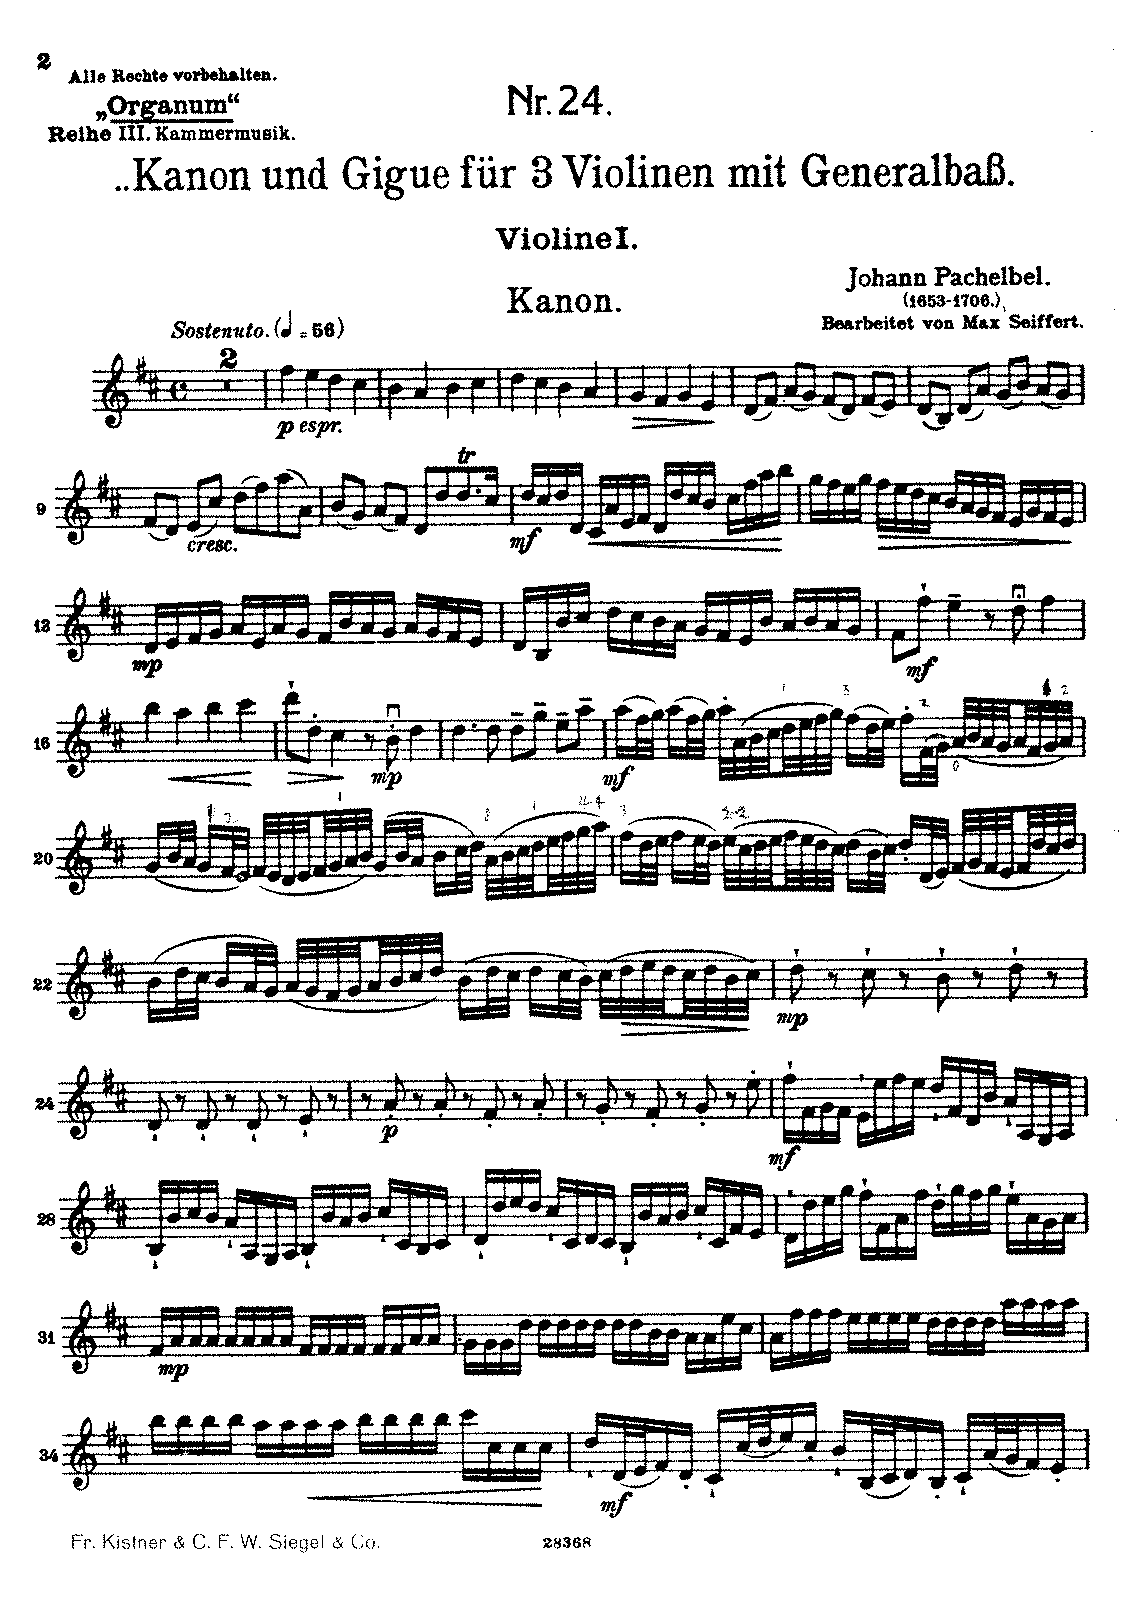 PMLP04611-Pachelbel - Kanon und Gigue Seiffert edition - parts.pdf